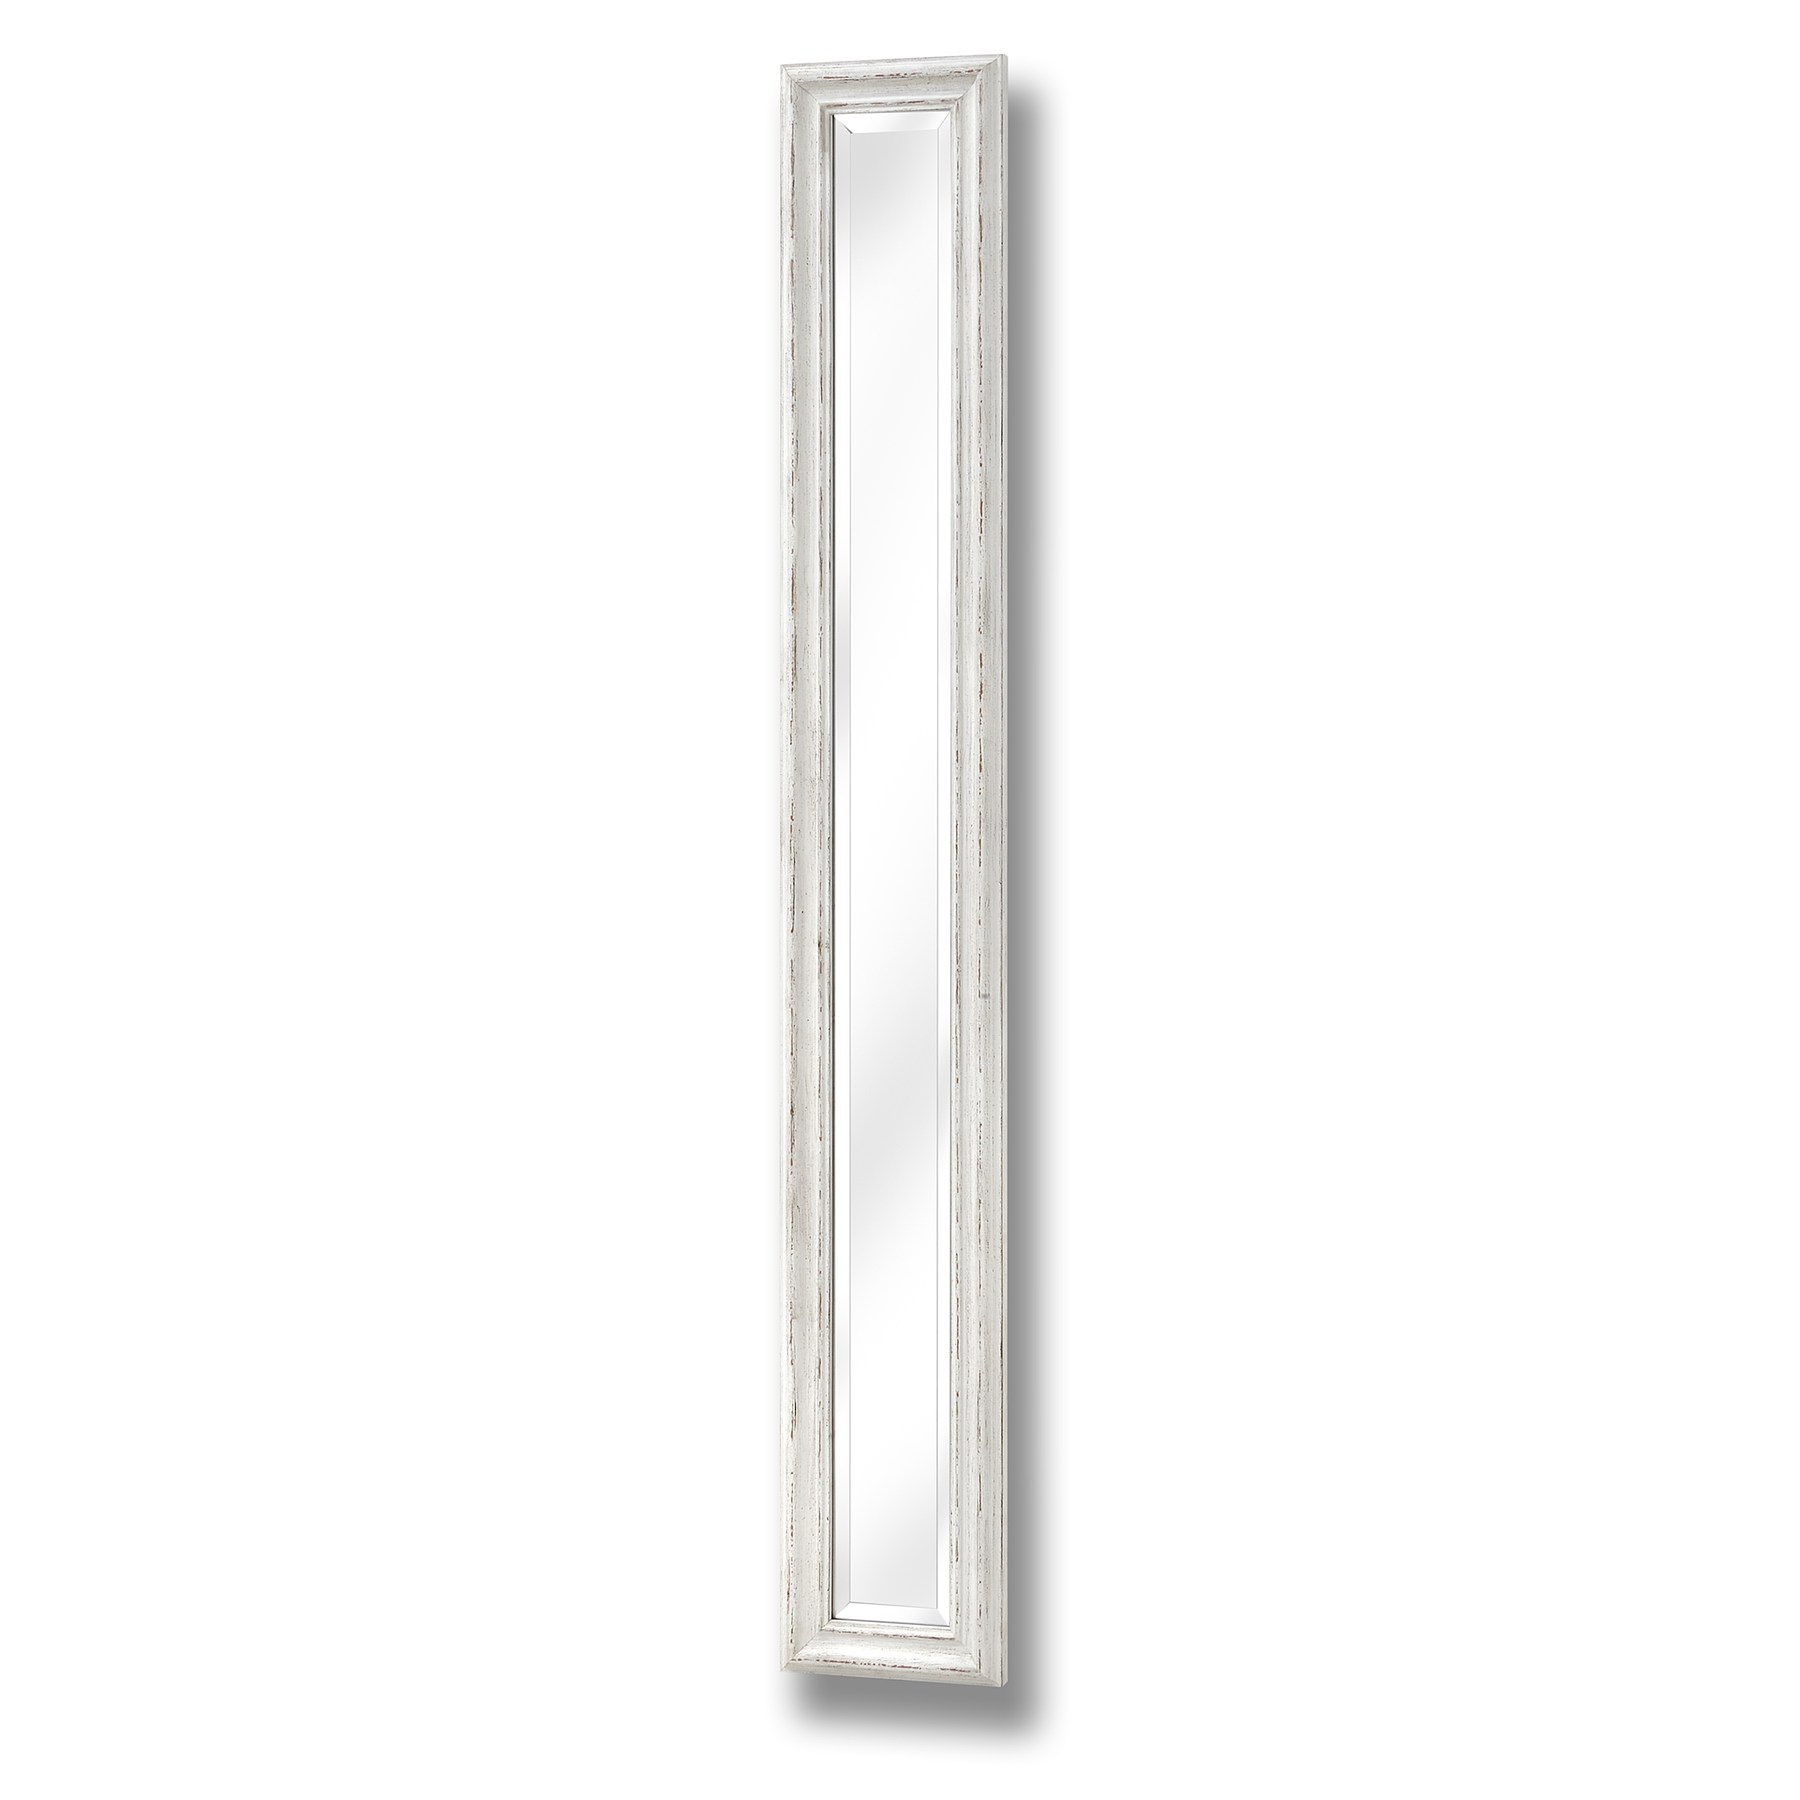 Antique white frame narrow wall mirror from hill interiors for Thin wall mirror